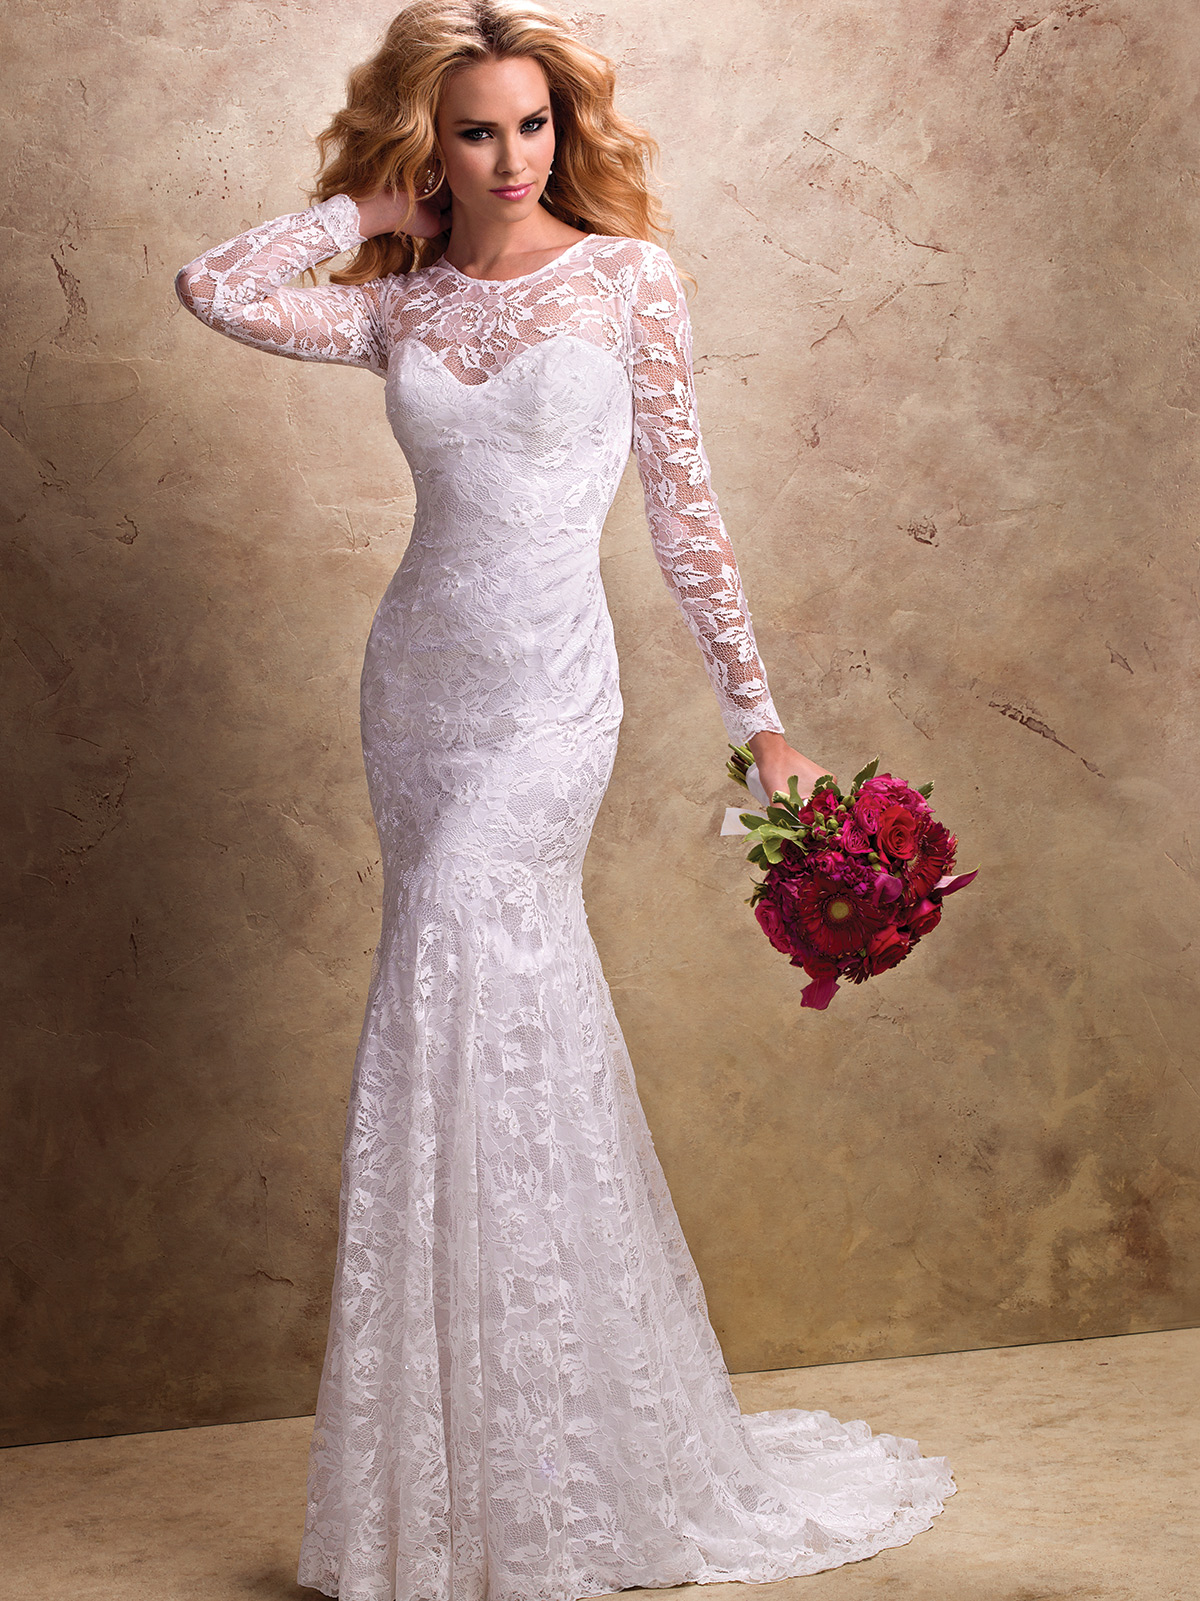 White Wedding Dresses With Lace Sleeves 86